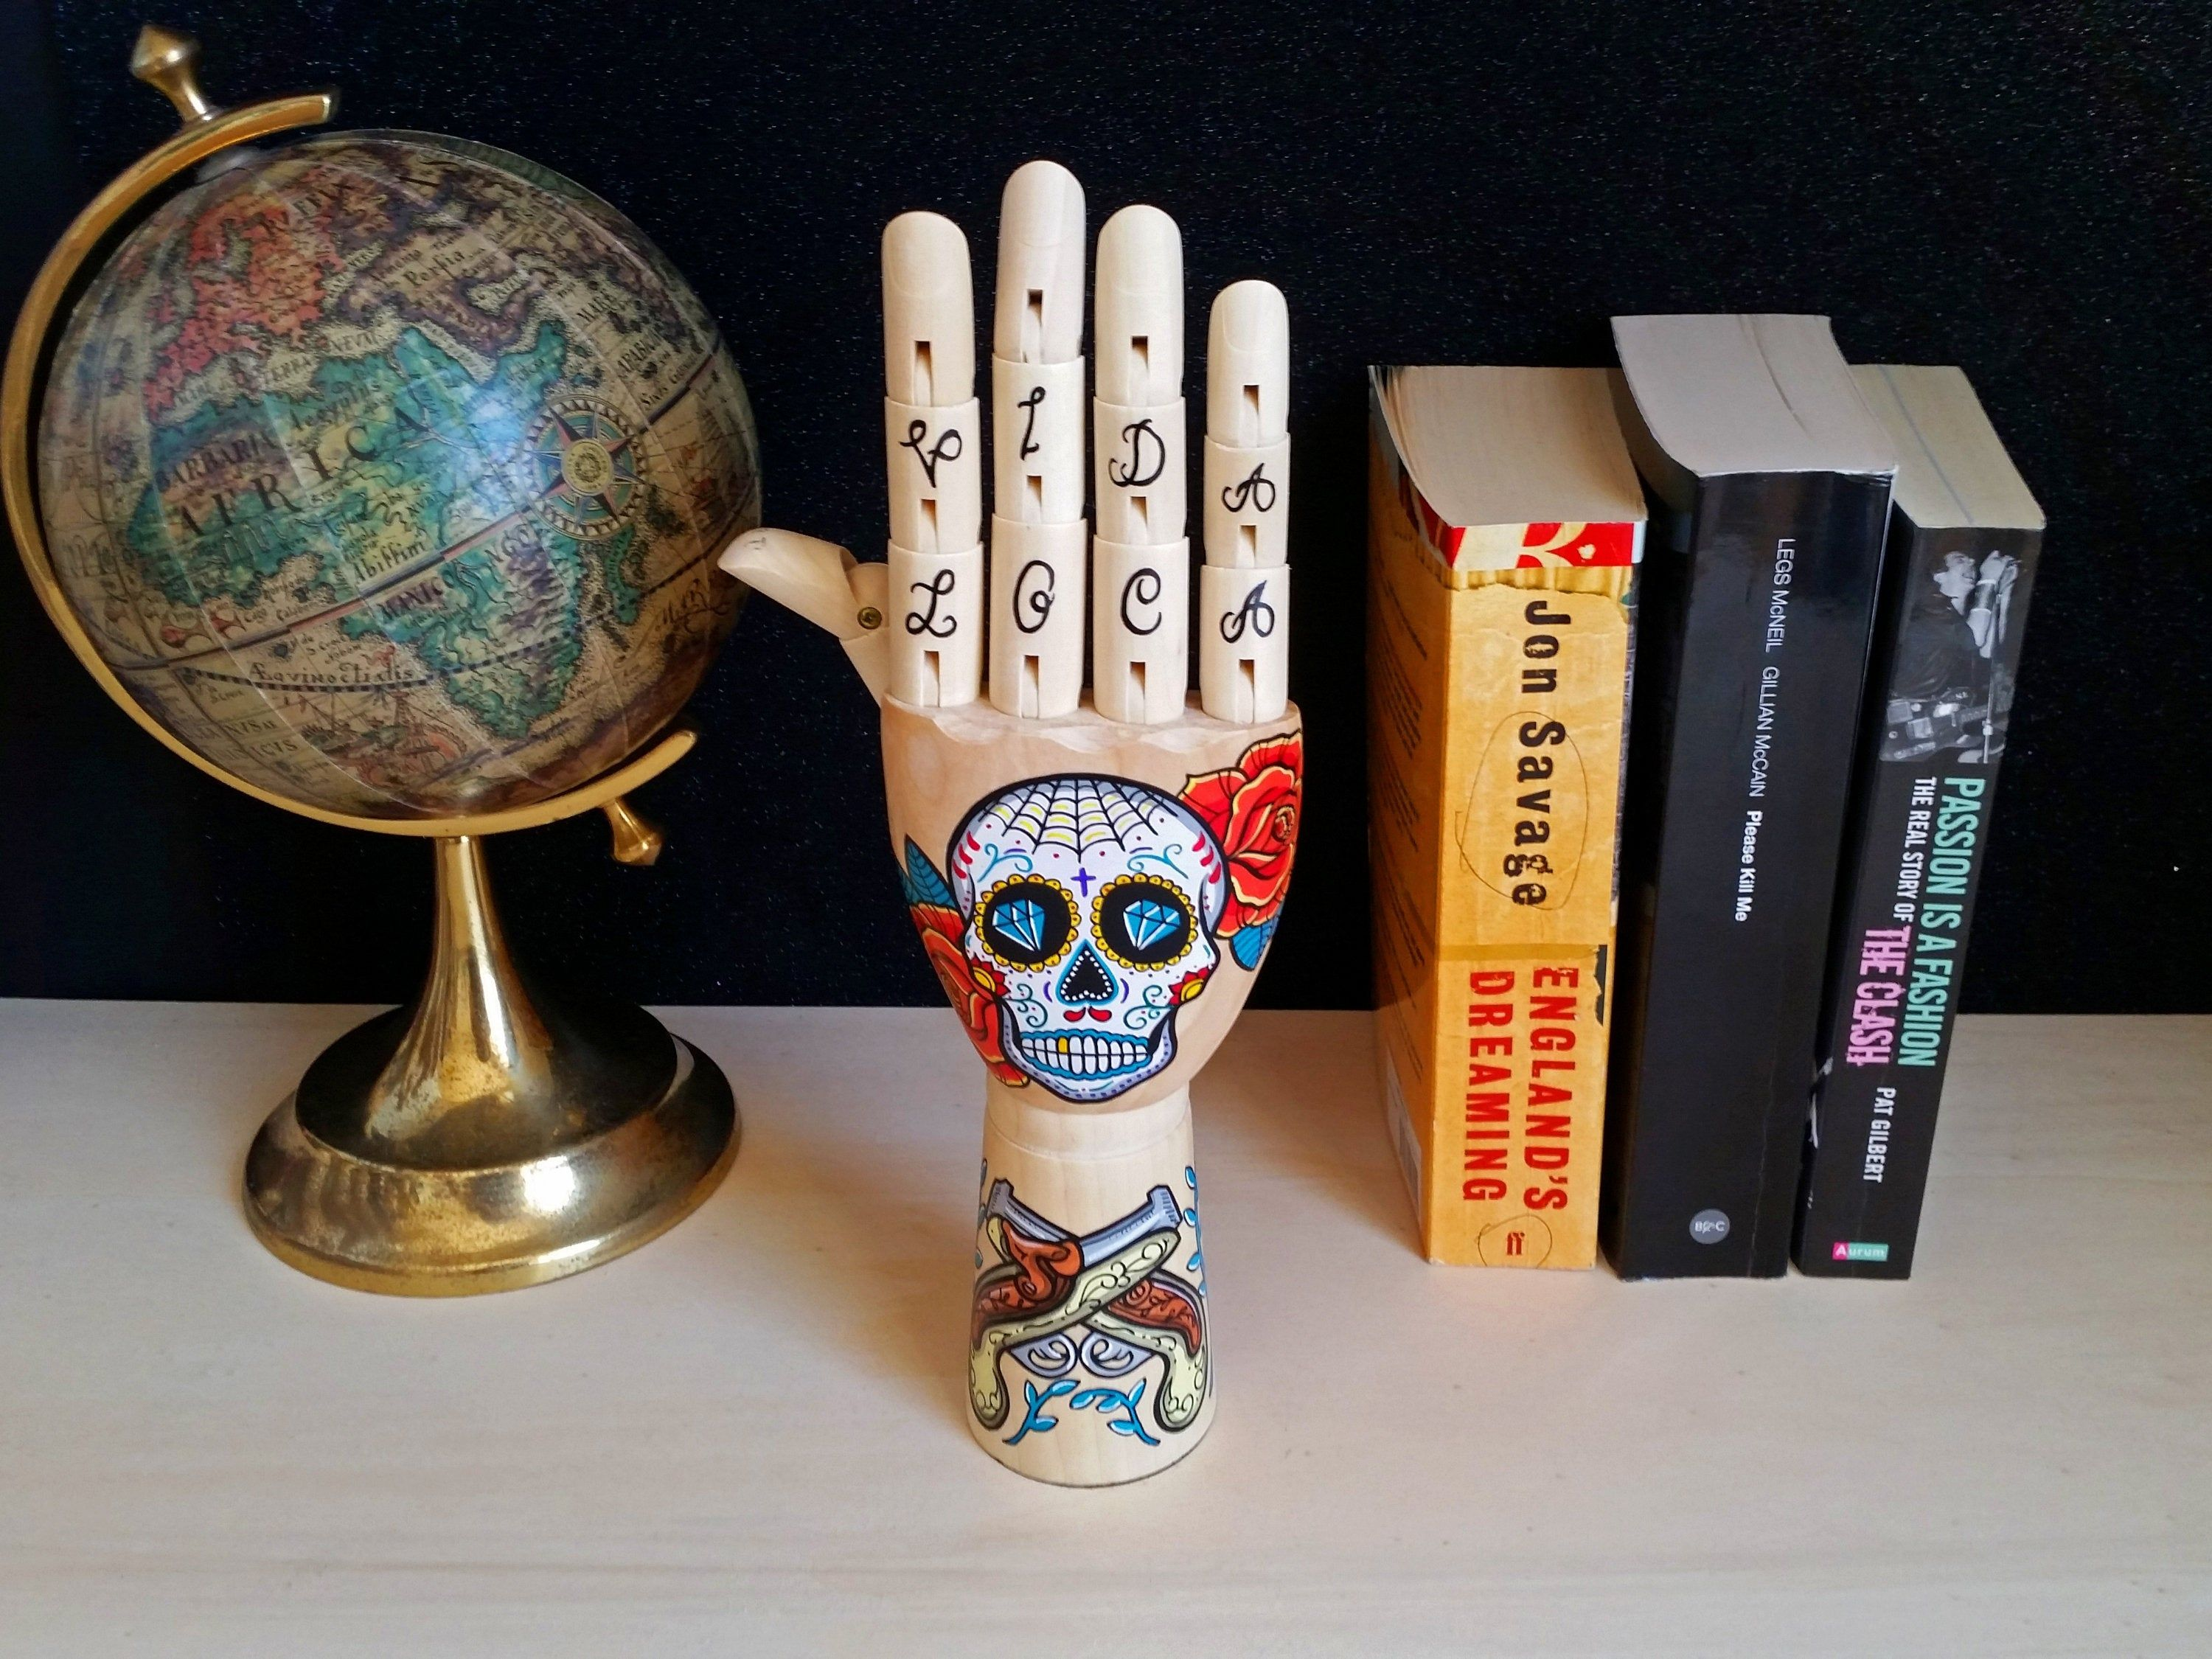 Casa Di Legno Costi hand painted samak wooden hand with mexican skull and guns